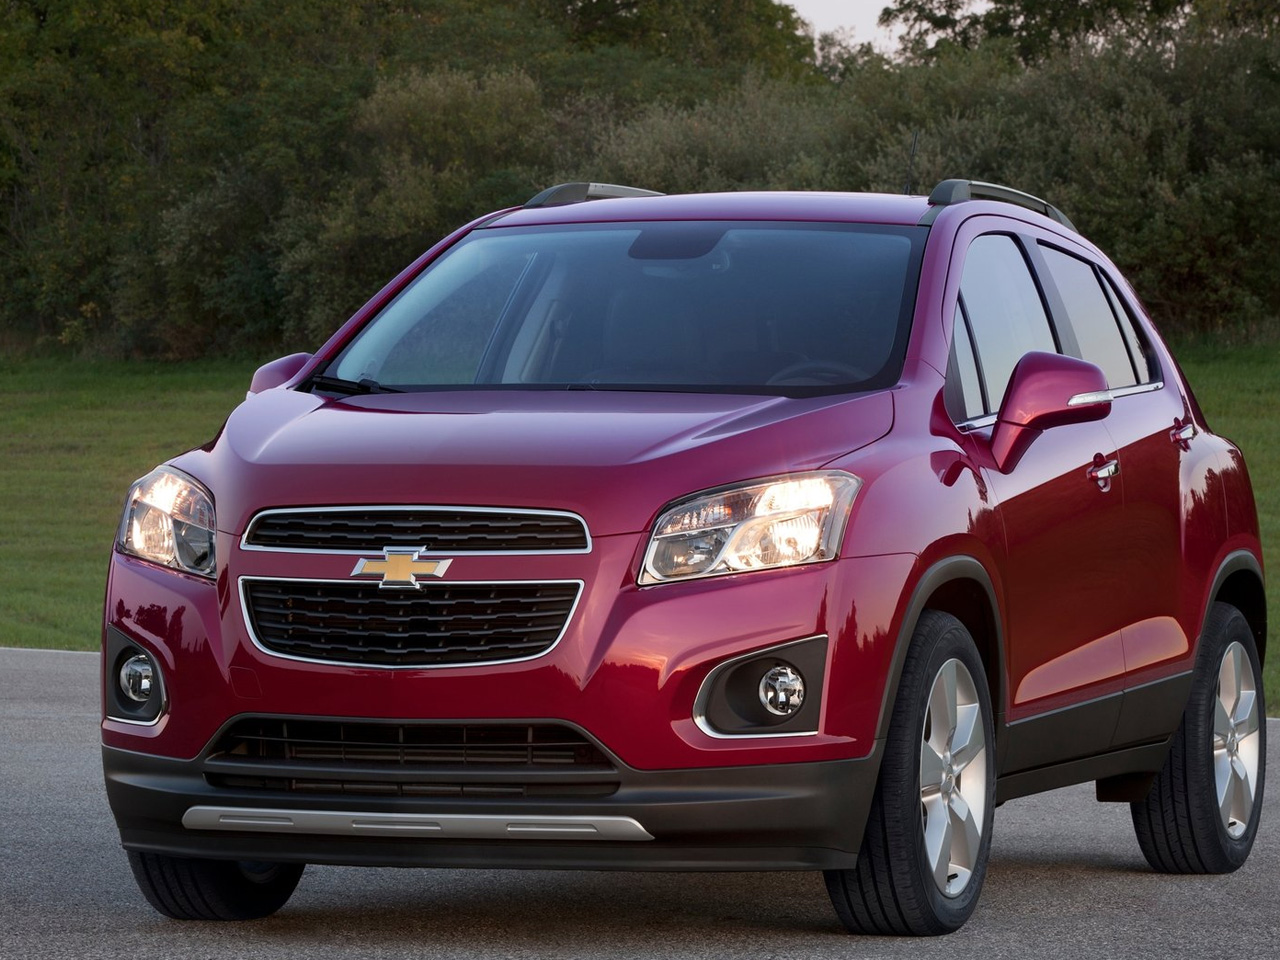 2013 chevrolet trax cars info. Black Bedroom Furniture Sets. Home Design Ideas